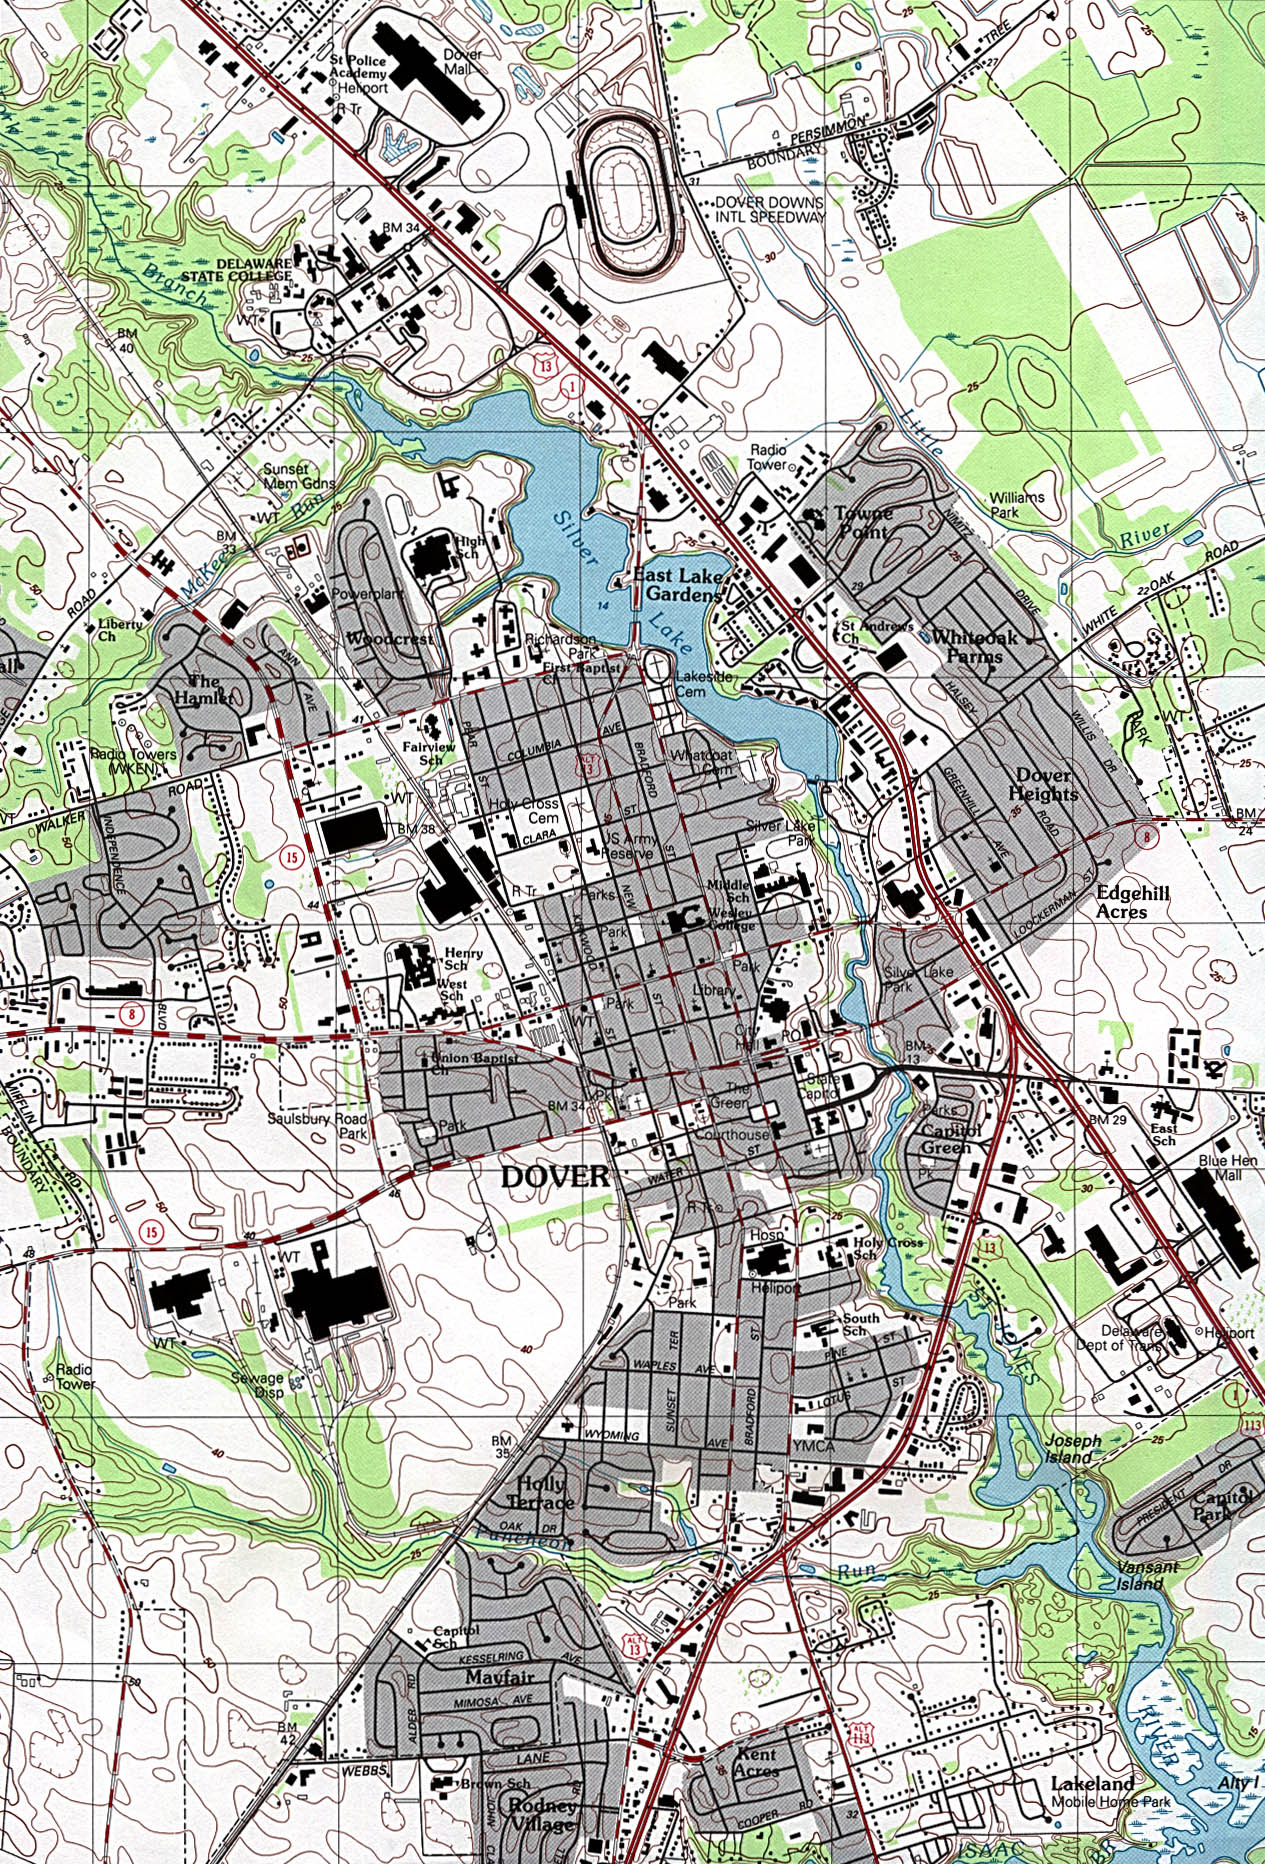 Dover Topographic City Map, Delaware, United States